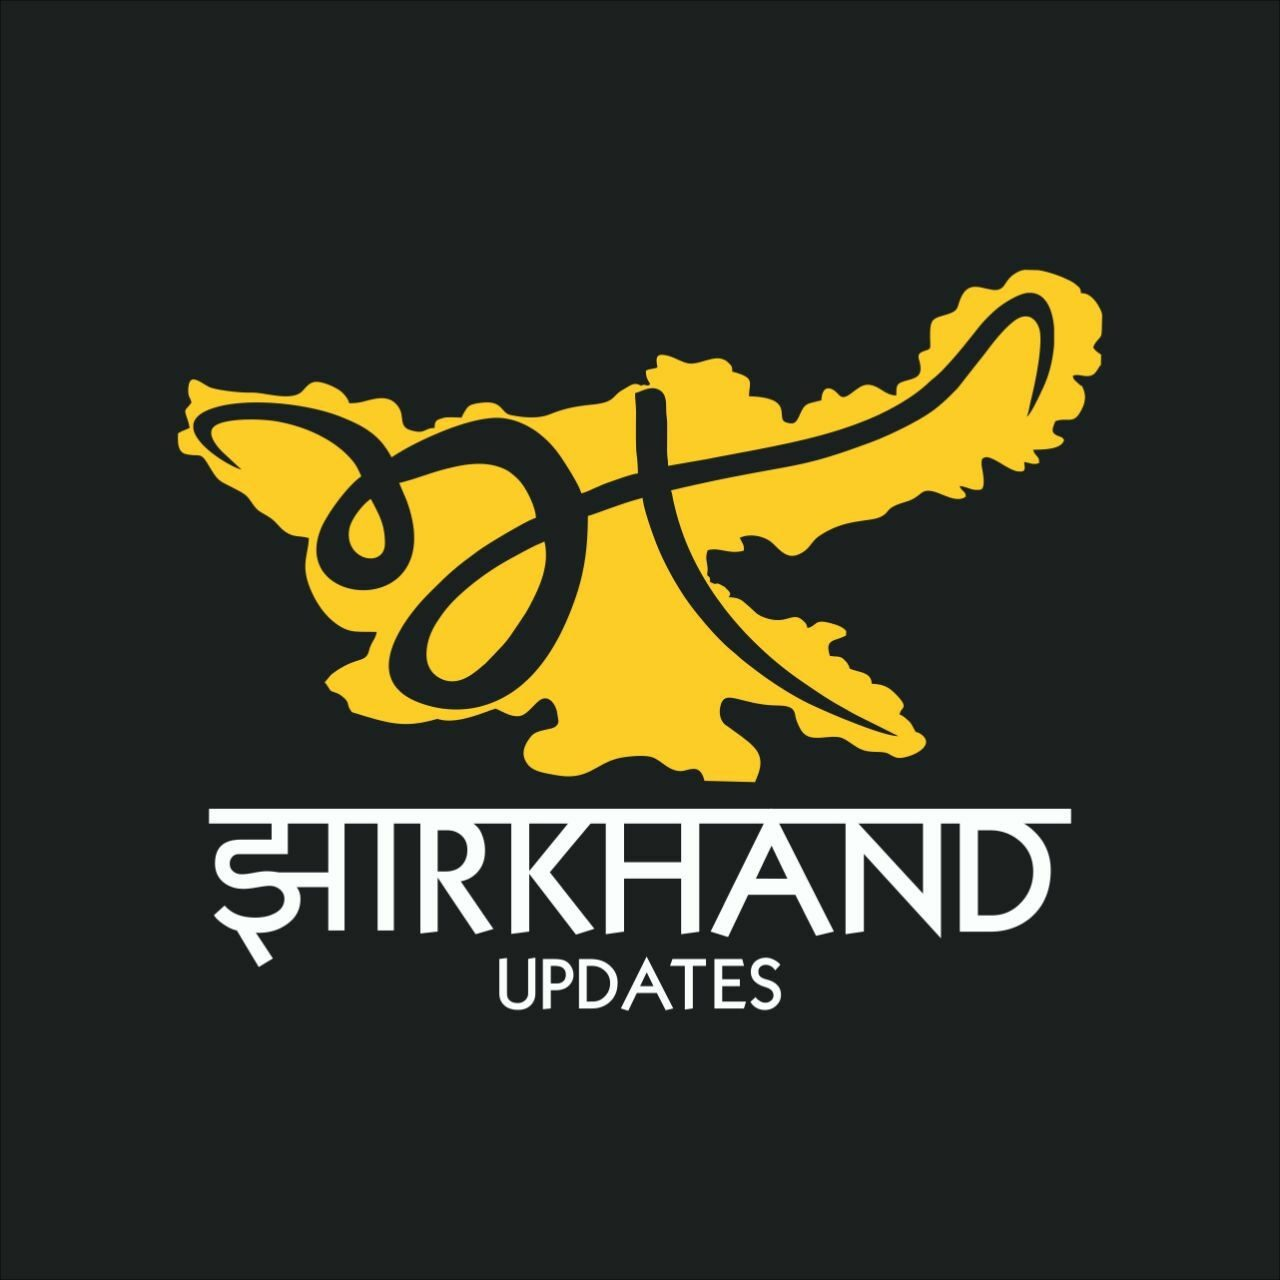 Jharkhand Updates